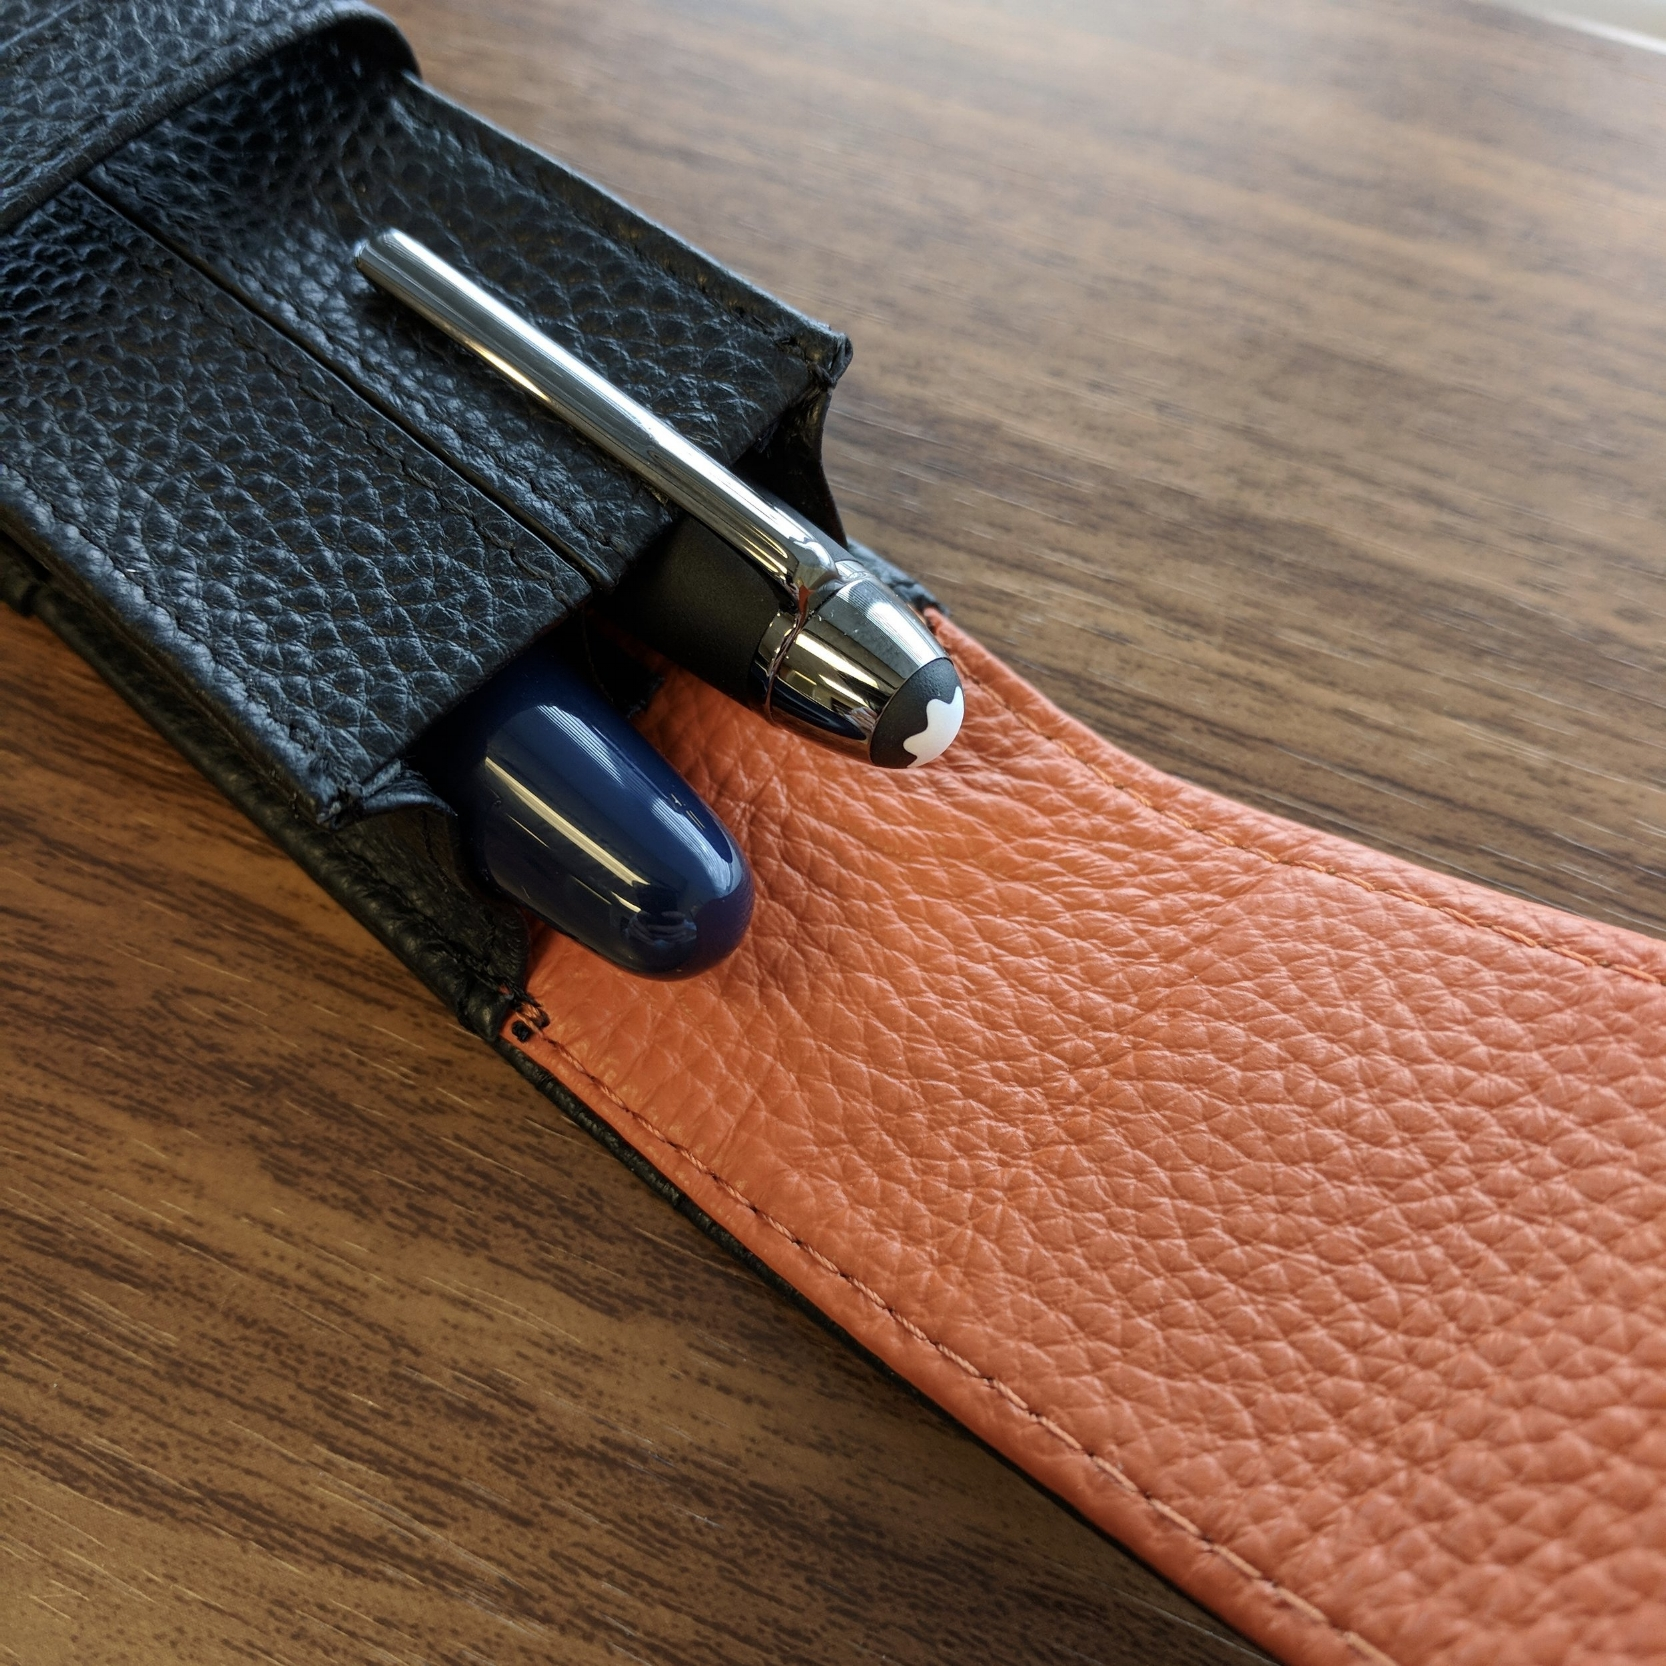 The size of the dream pen is roughly equivalent to a  Montblanc 146 , though slightly fatter and longer. Both pens shown here in a Wancher leather two-pen case.